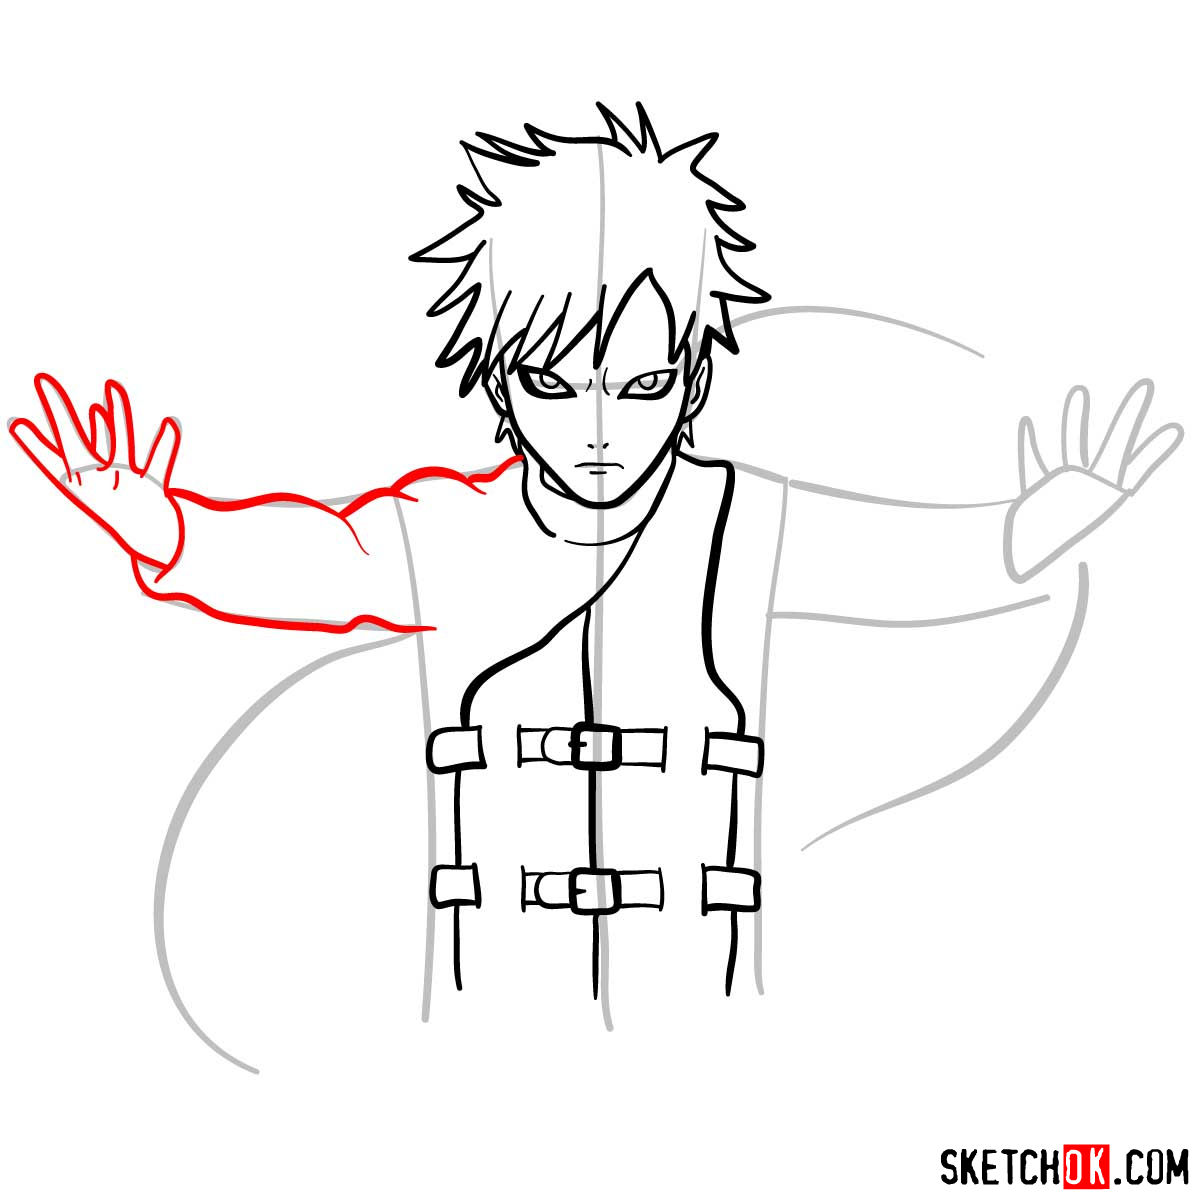 How to draw Gaara from Naruto anime - step 08